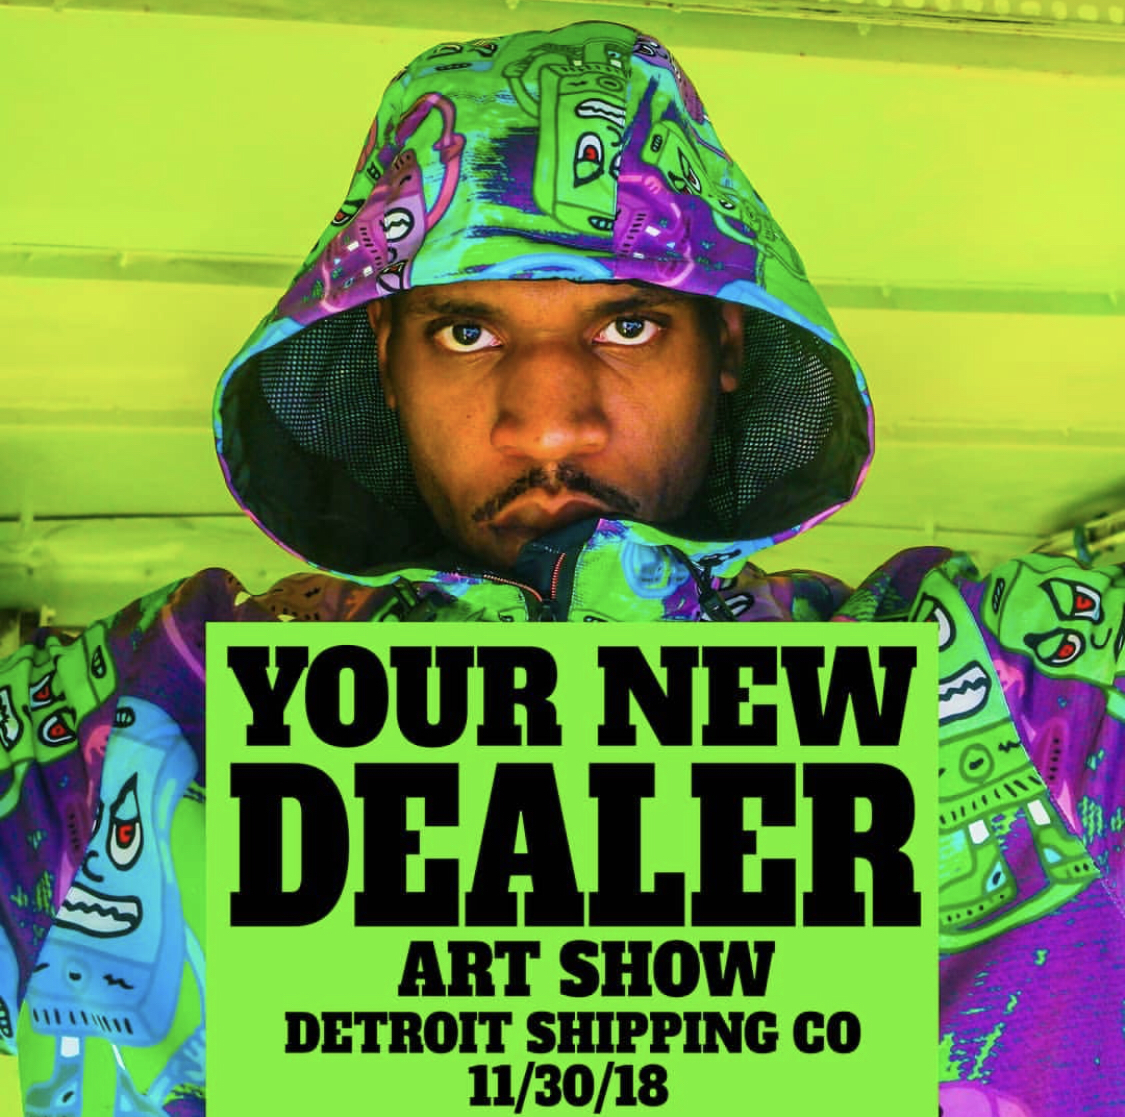 "As Shoot Dope Spot presents a solo art exhibition ""YOUR NEW DEALER"" featuring its founding artist Nutty. Known for electric color and psychedelic illustration, this well- known Detroit artist brings his vibrant vision to life with with an all-encompassing event you don't want to miss! Energetic sounds will be provided by Sheefy Mcfly and Tiptionaires to compliment the lively mix of visual attractions. This event goes from 6:00PM-9:00PM so make sure to stop by for an introduction to ""YOUR NEW DEALER""."